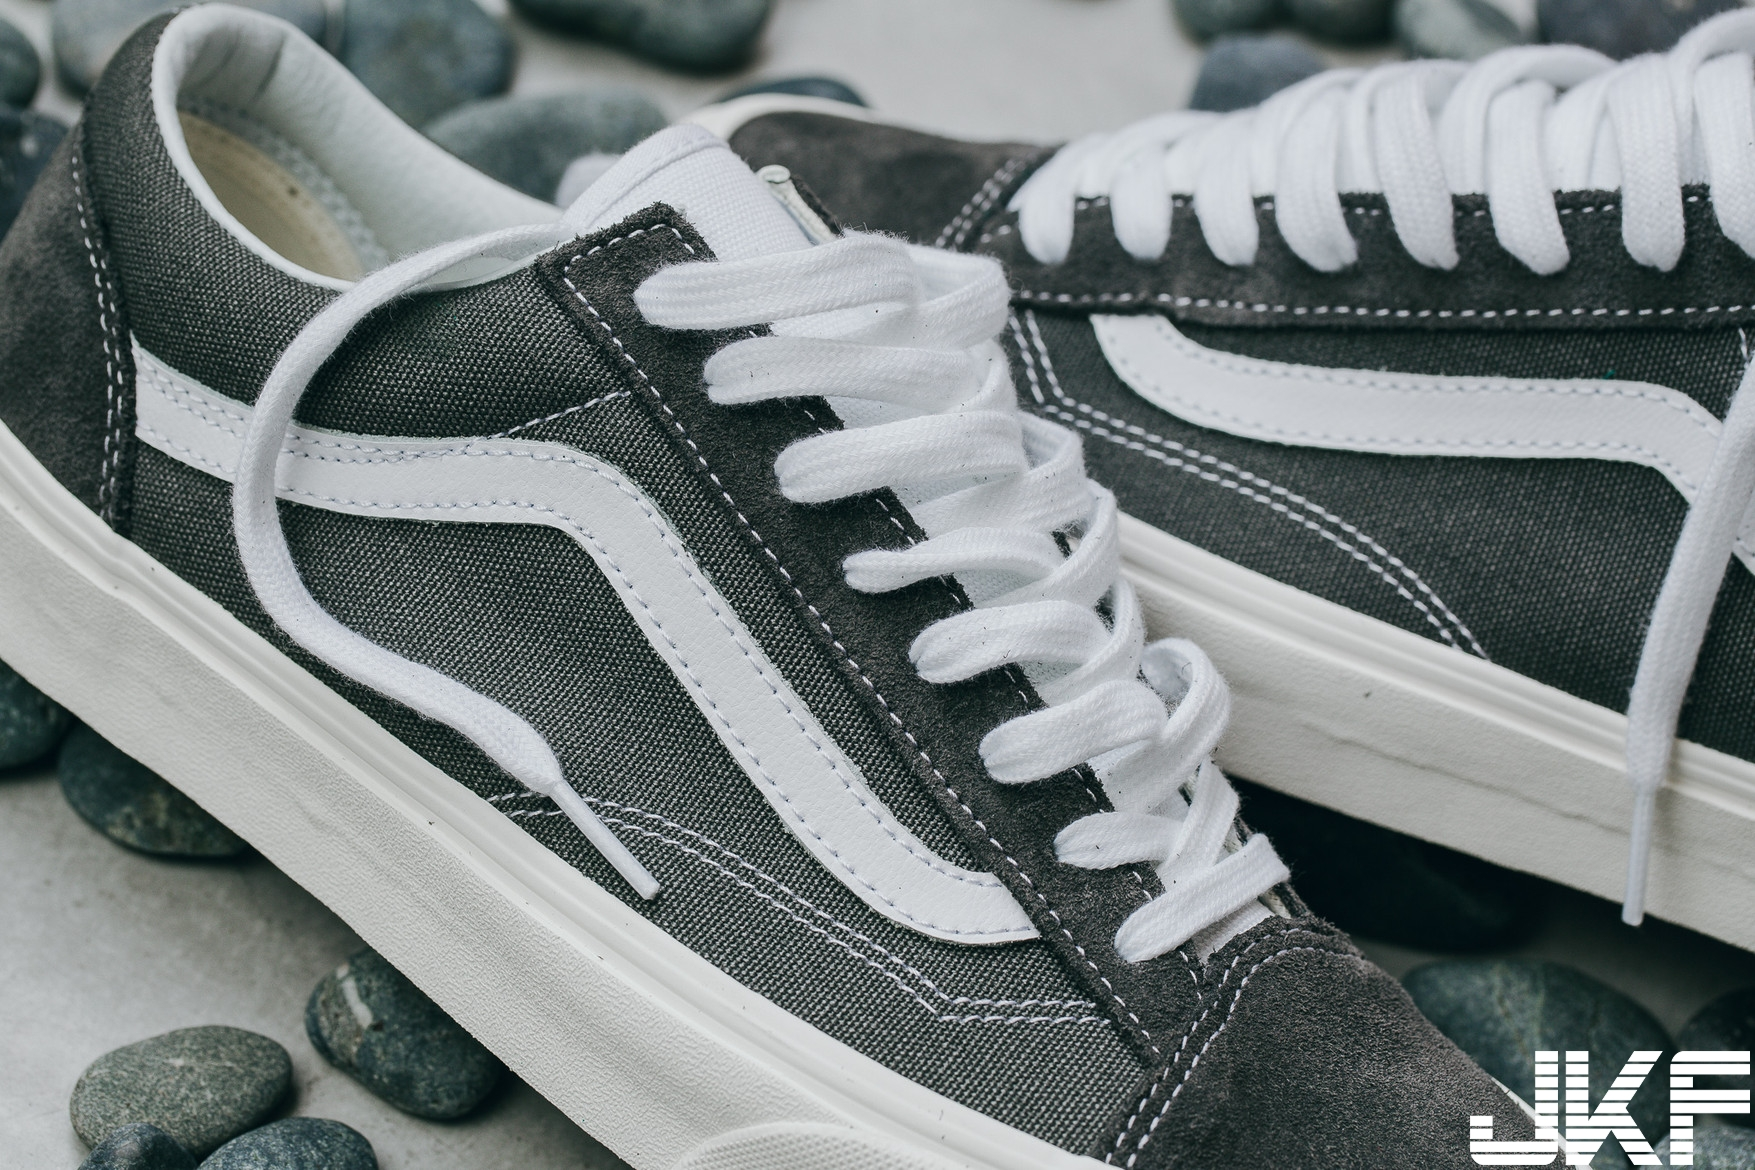 https_%2F%2Fhk.hypebeast.com%2Ffiles%2F2018%2F07%2Fbrand-new-color-vans-style-36-4.jpg